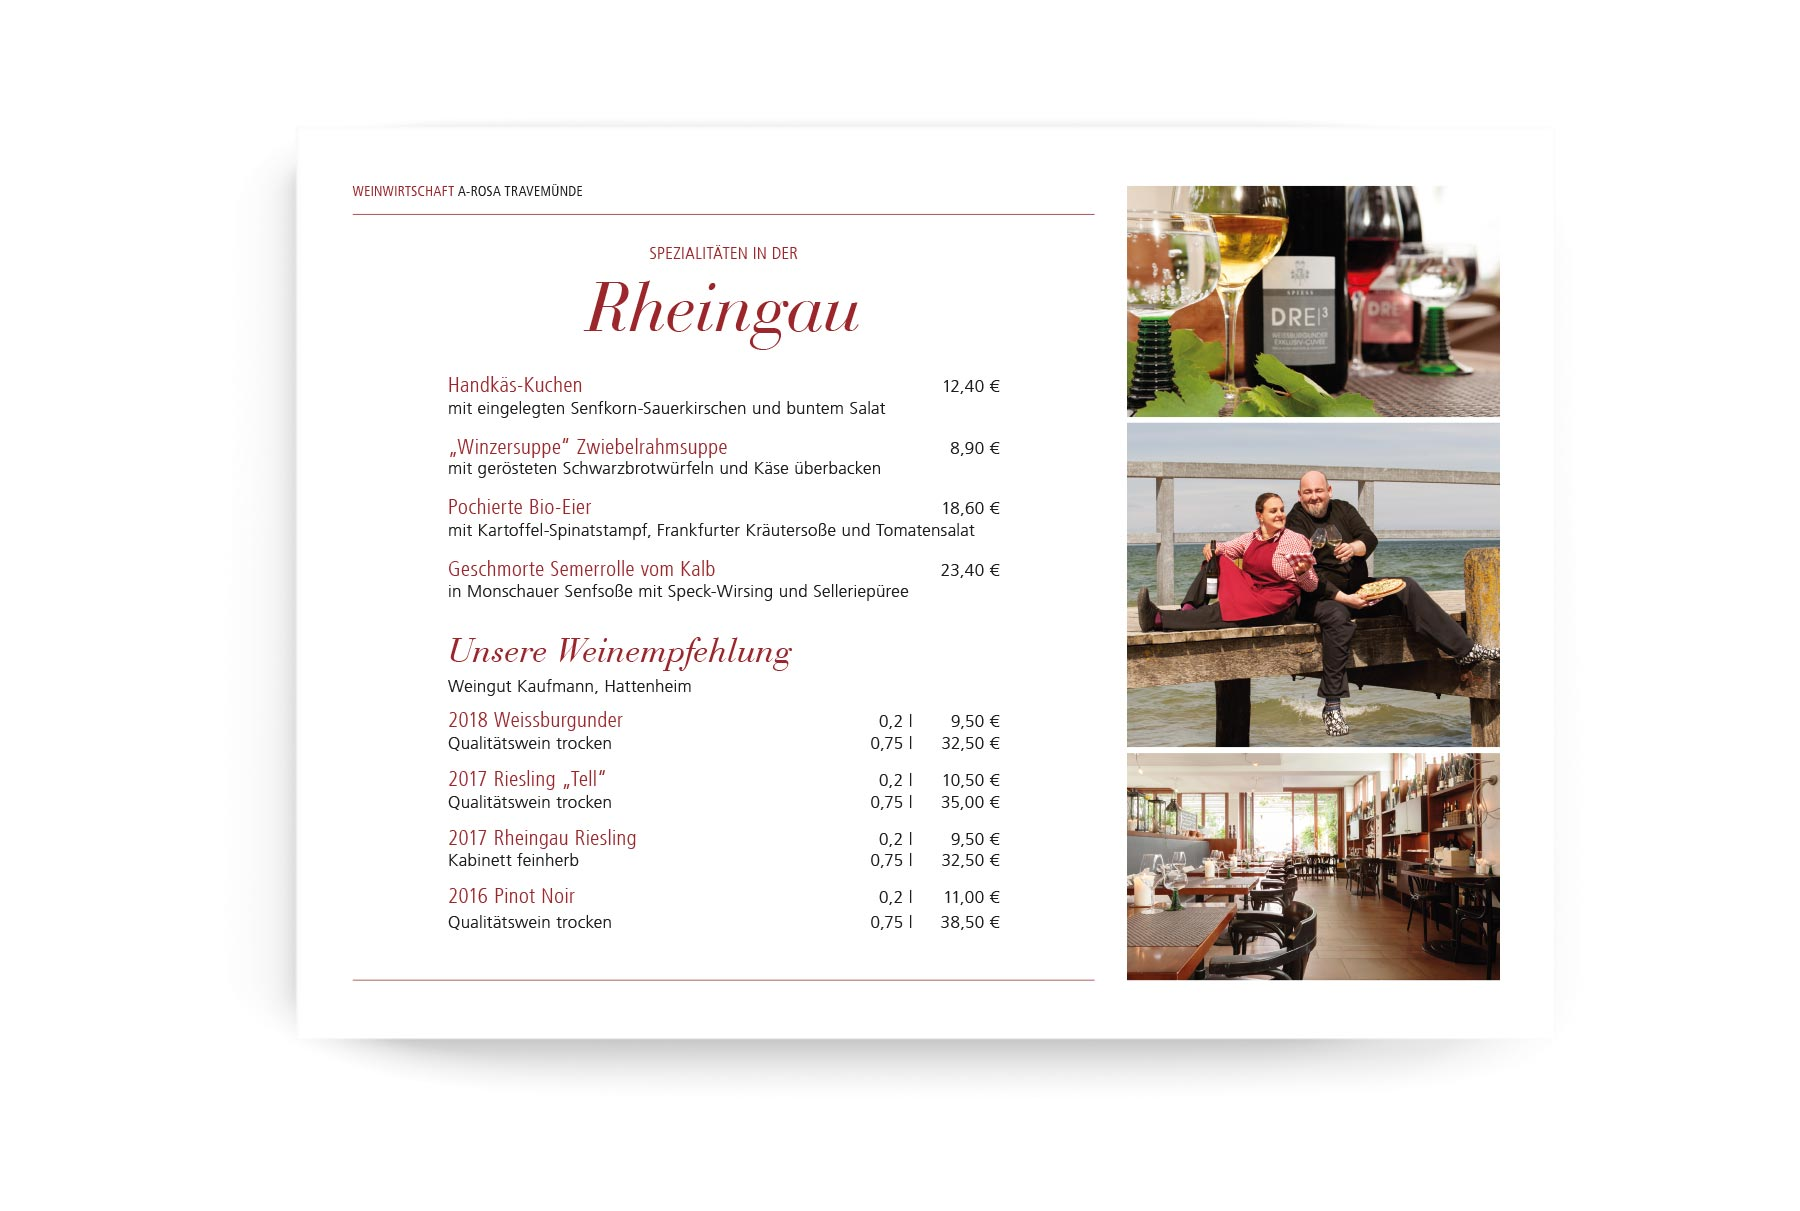 menucard printed through Hotel MSSNGR Carbon